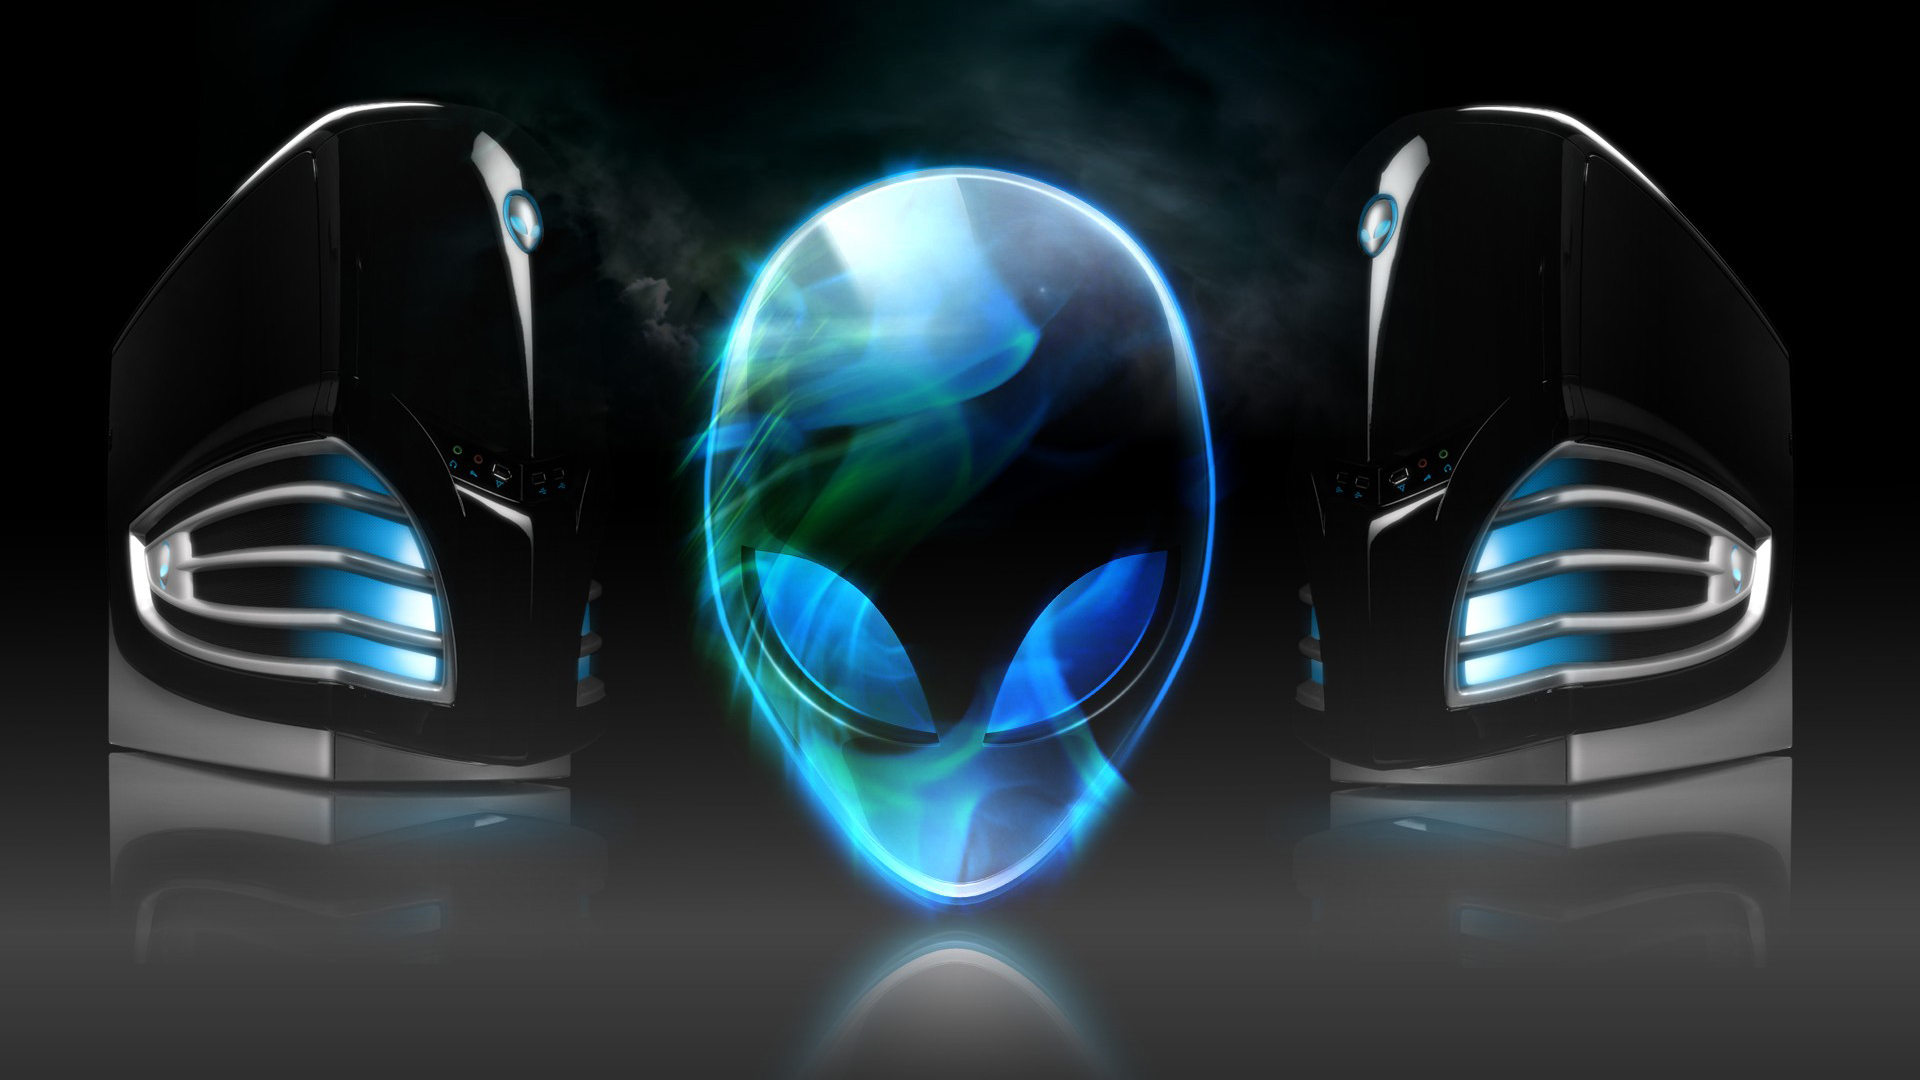 alienware dark blue logo background hd 1920x1080 1080p wallpaper 1920x1080